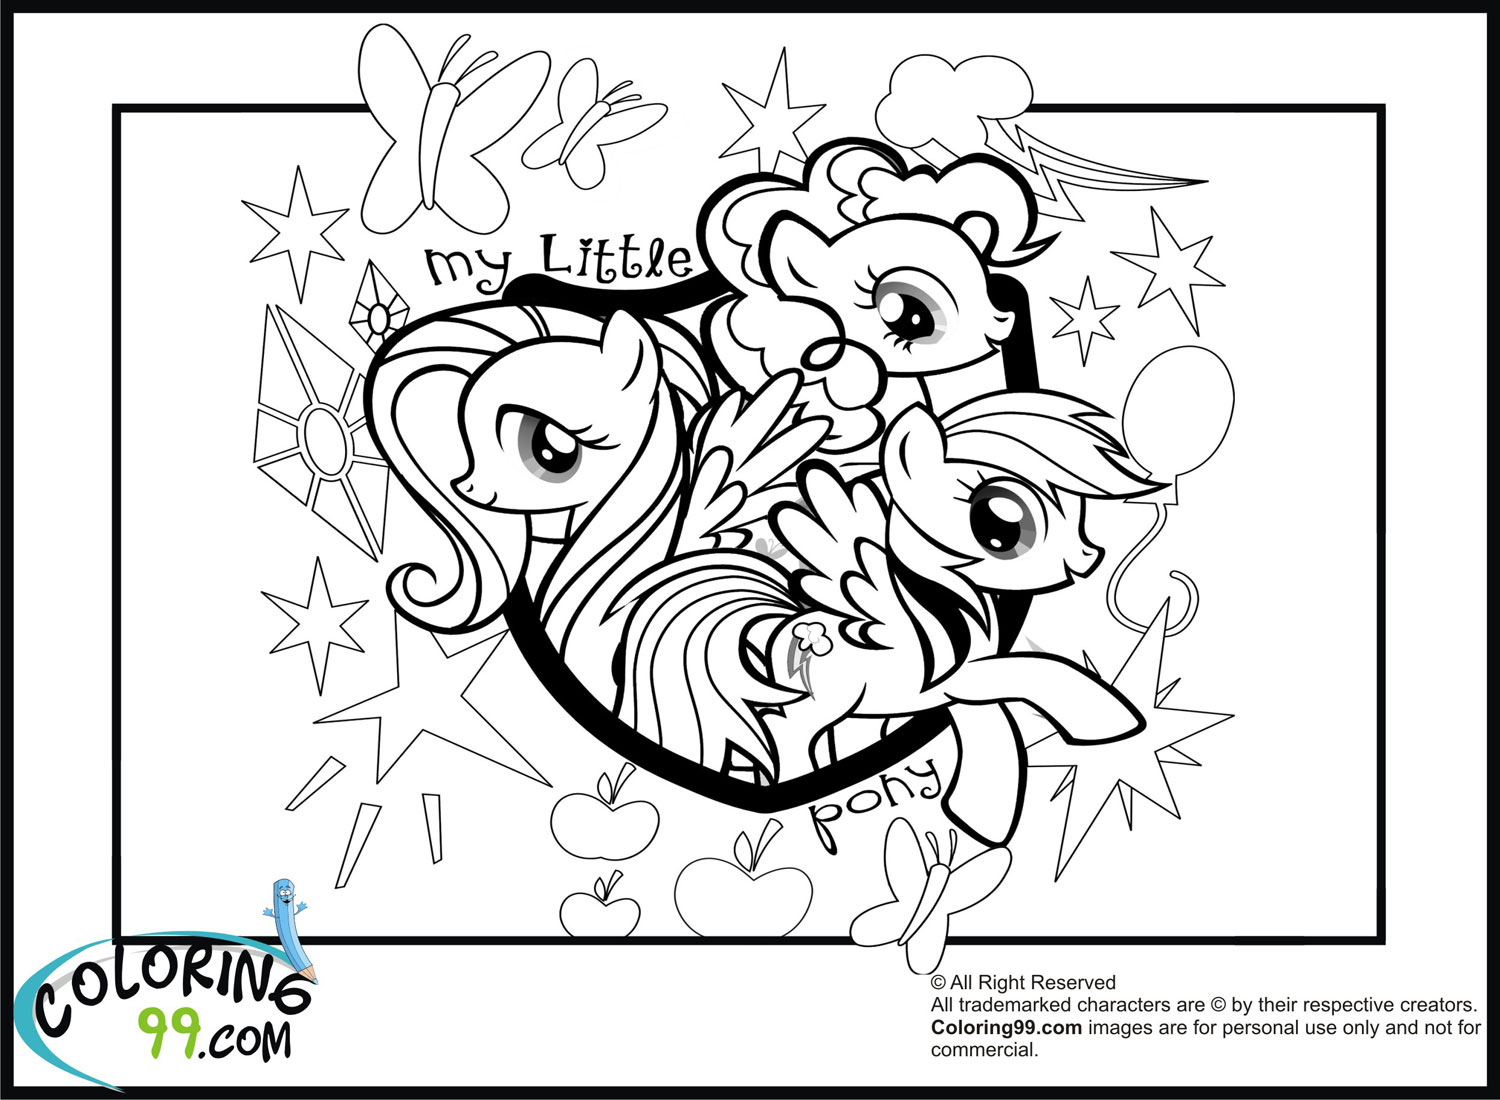 Coloring Pages My Little Pony Friendship Is Magic My Pony Equestria Friendship Coloring Pages